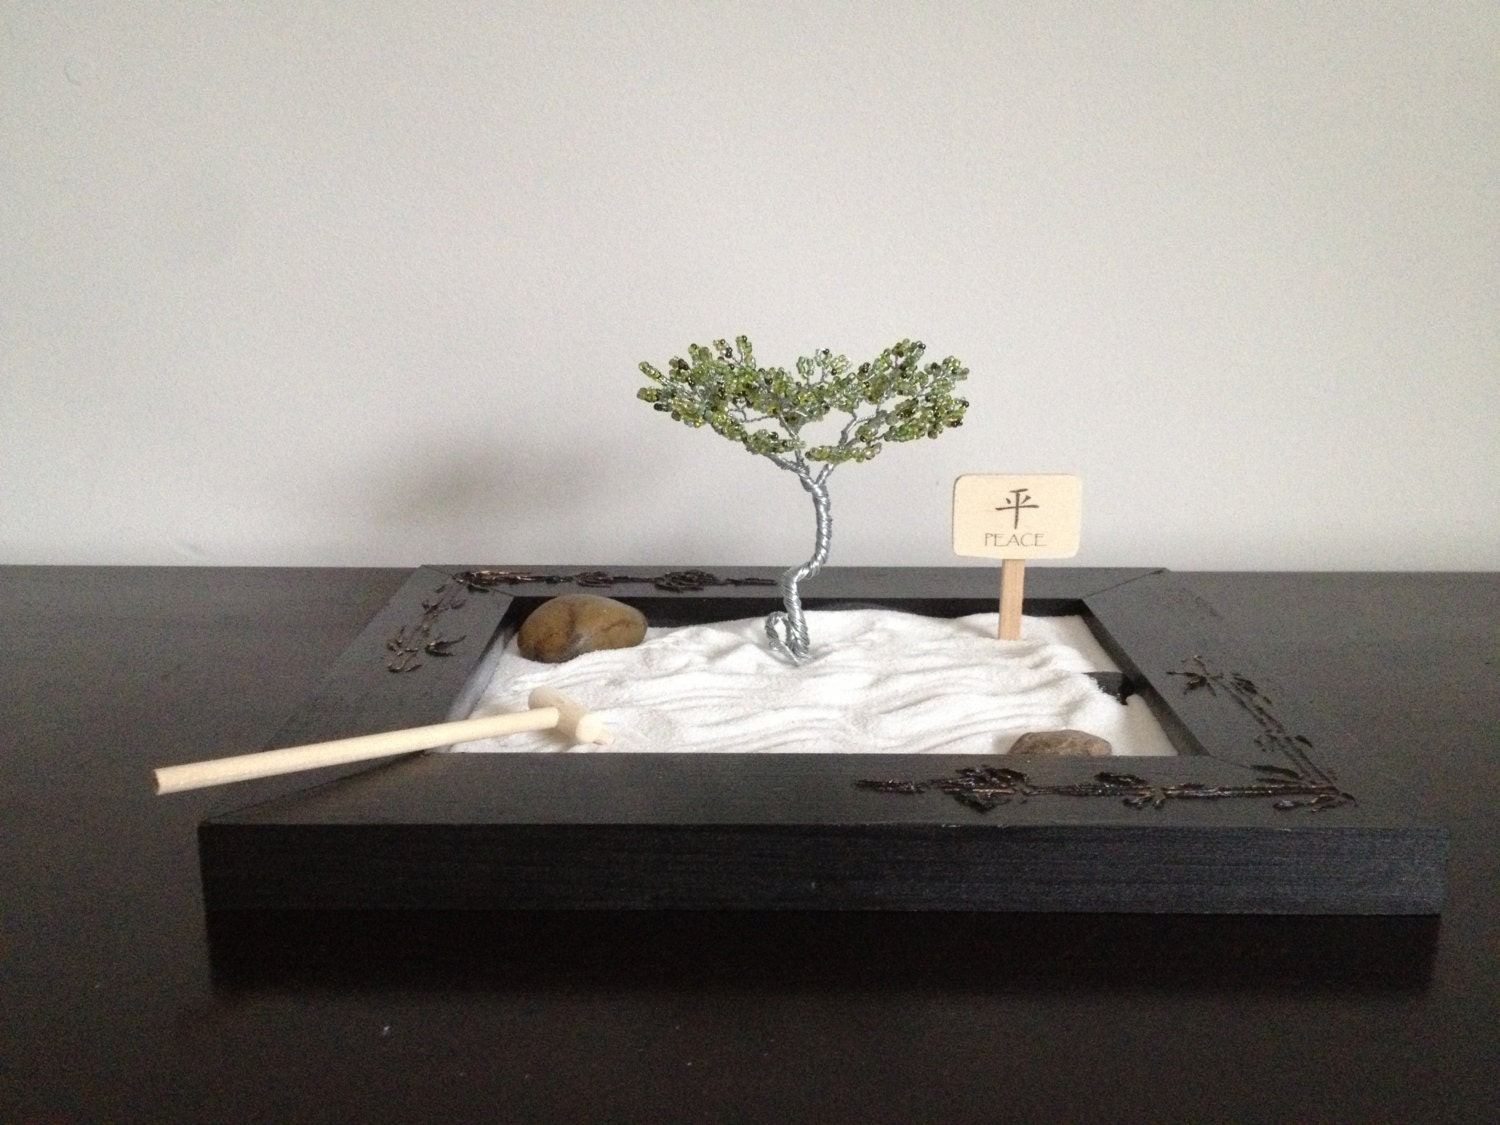 zen garden kit plus zen garden tree. Black Bedroom Furniture Sets. Home Design Ideas